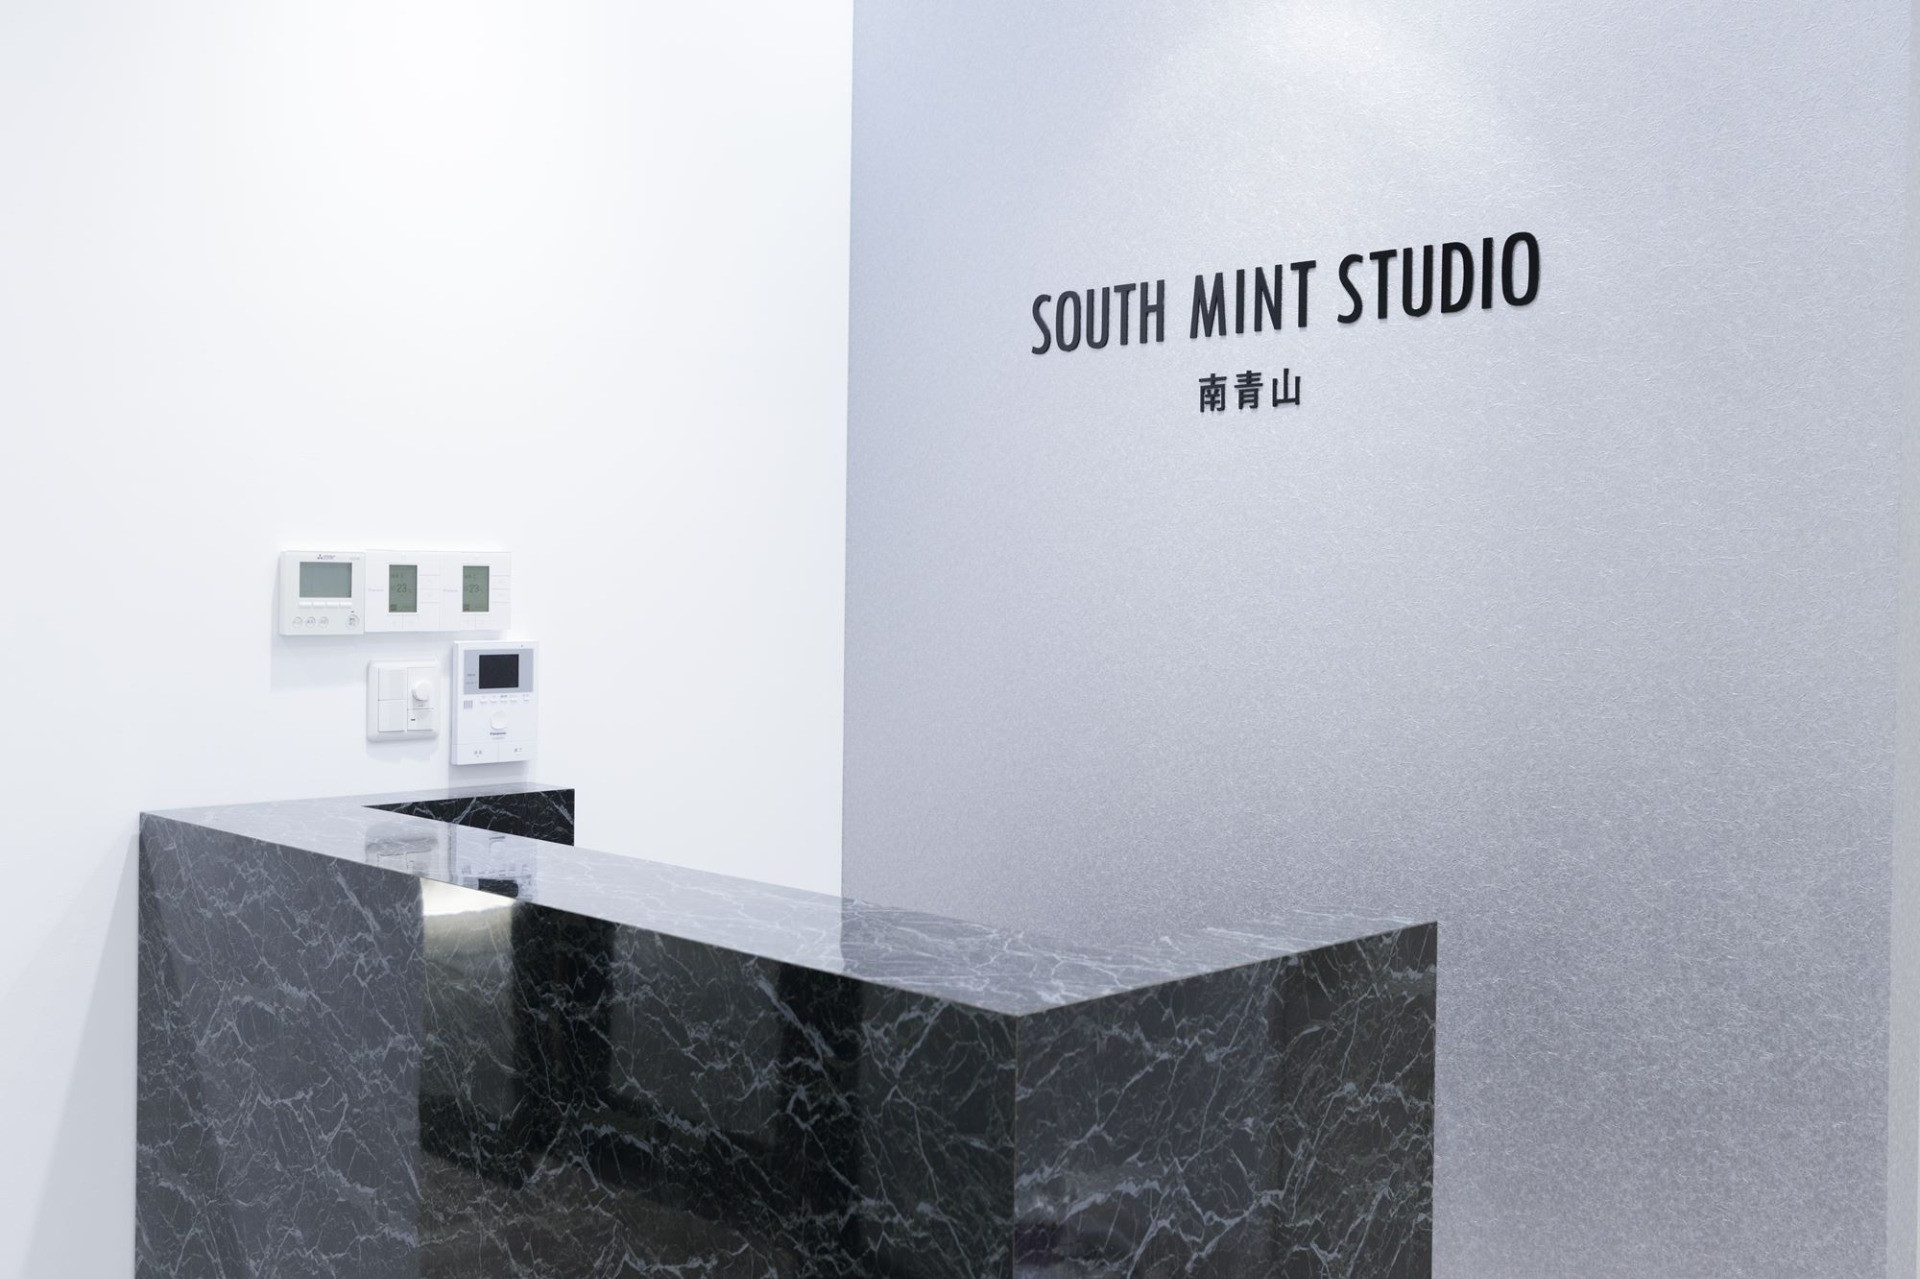 SOUTH MINT STUDIO